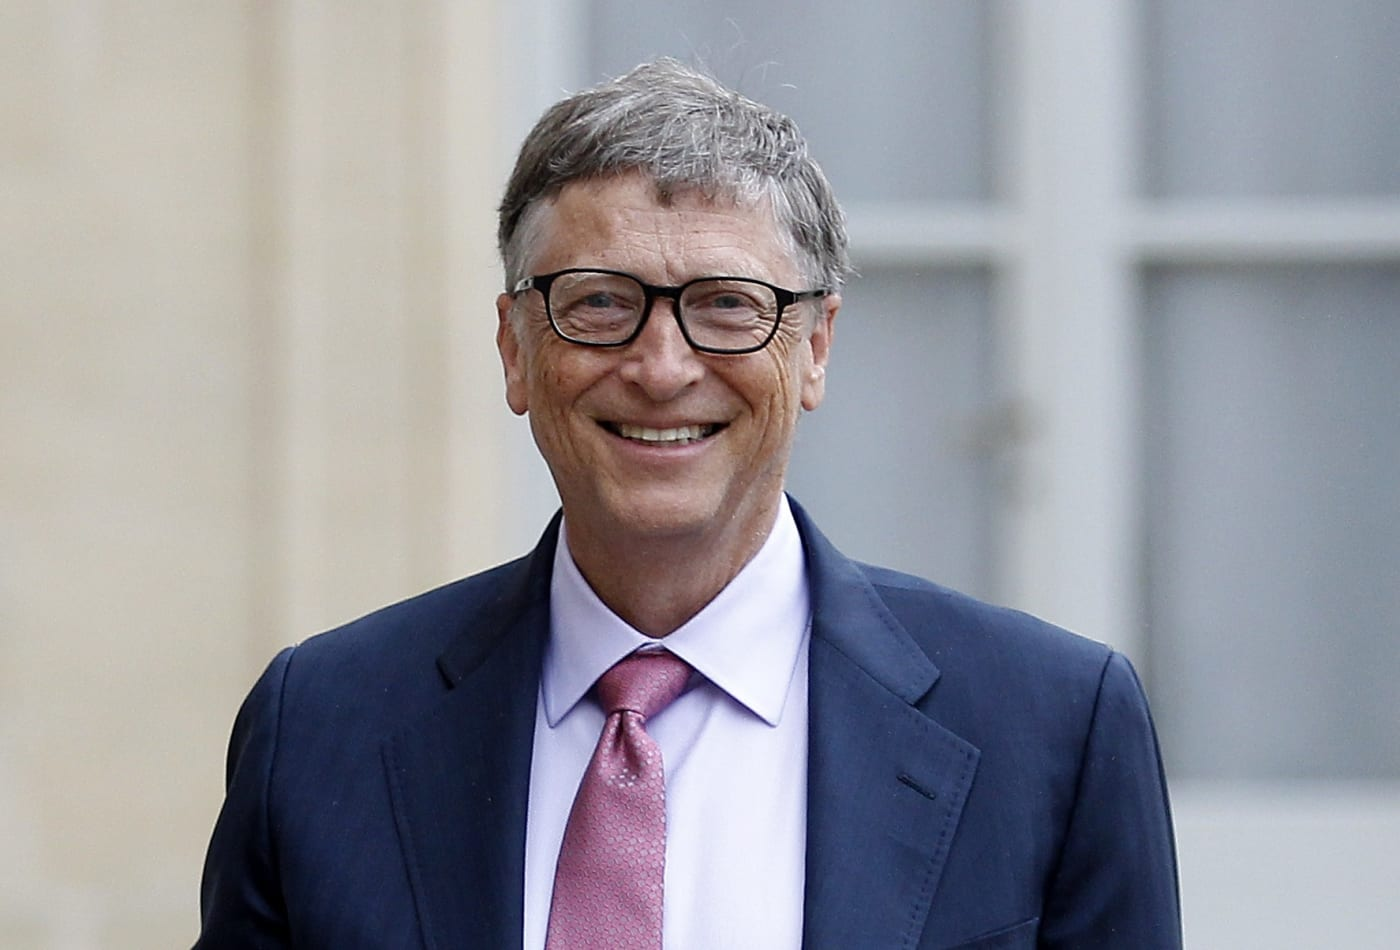 Bill Gates Removed From Bloomberg's Billionaire List After Divorce